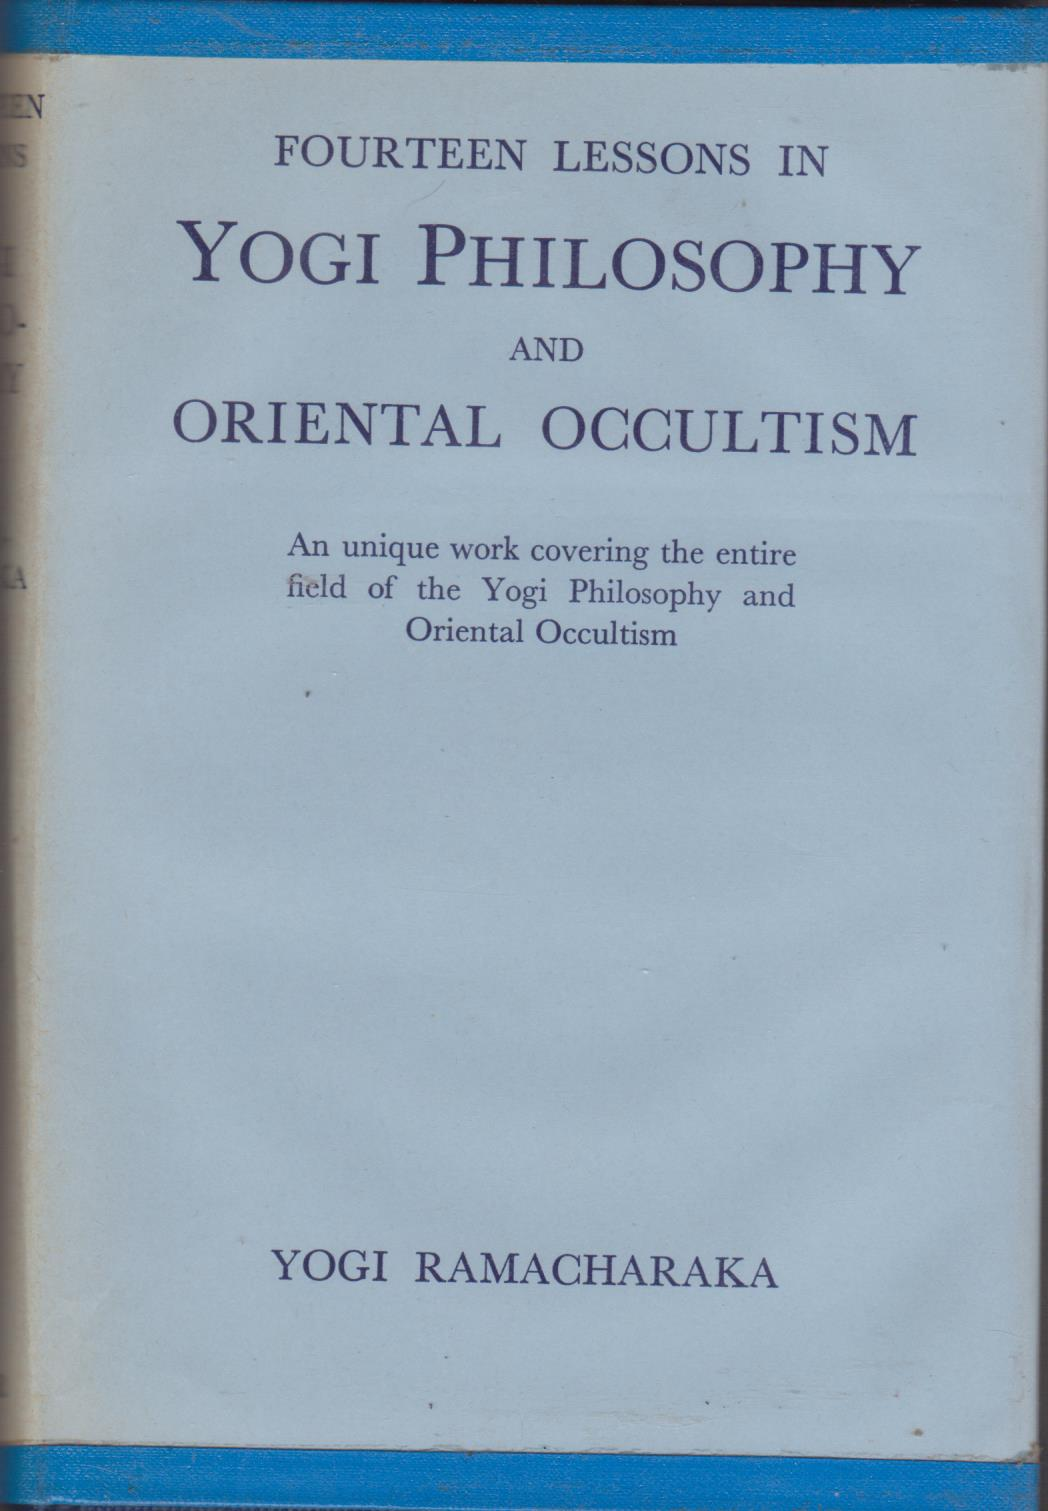 cover image of Fourteen Lessons in Yogi Philosoophy and Oriental Occultism